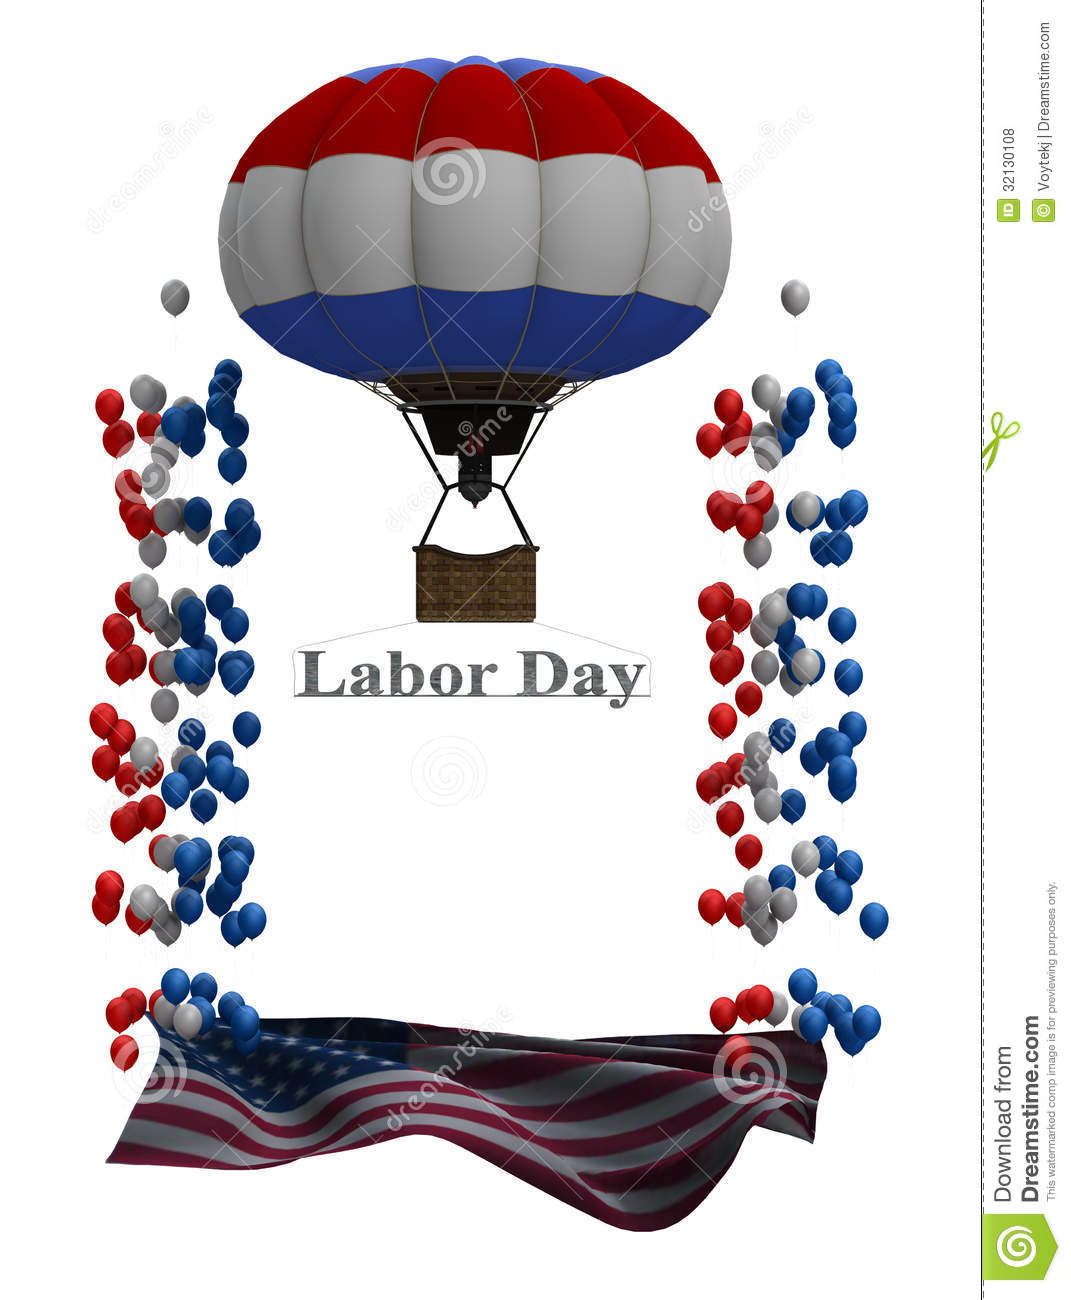 Labor Day Flyer Graphic Stock Illustration Illustration Of Baloons